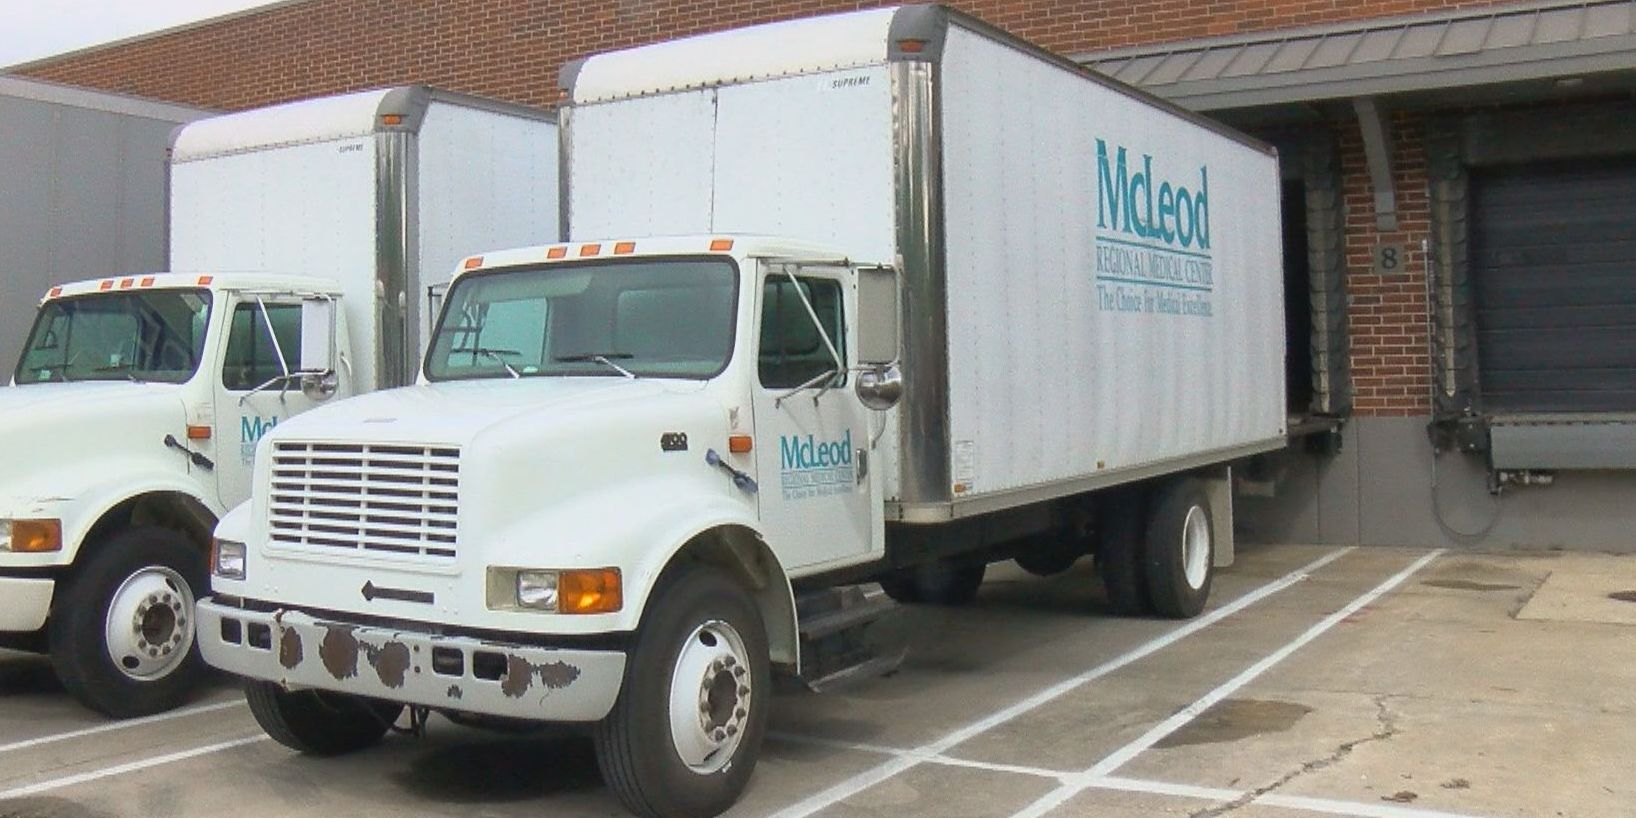 McLeod Health asks for donations to sustain their supply as COVID-19 spreads